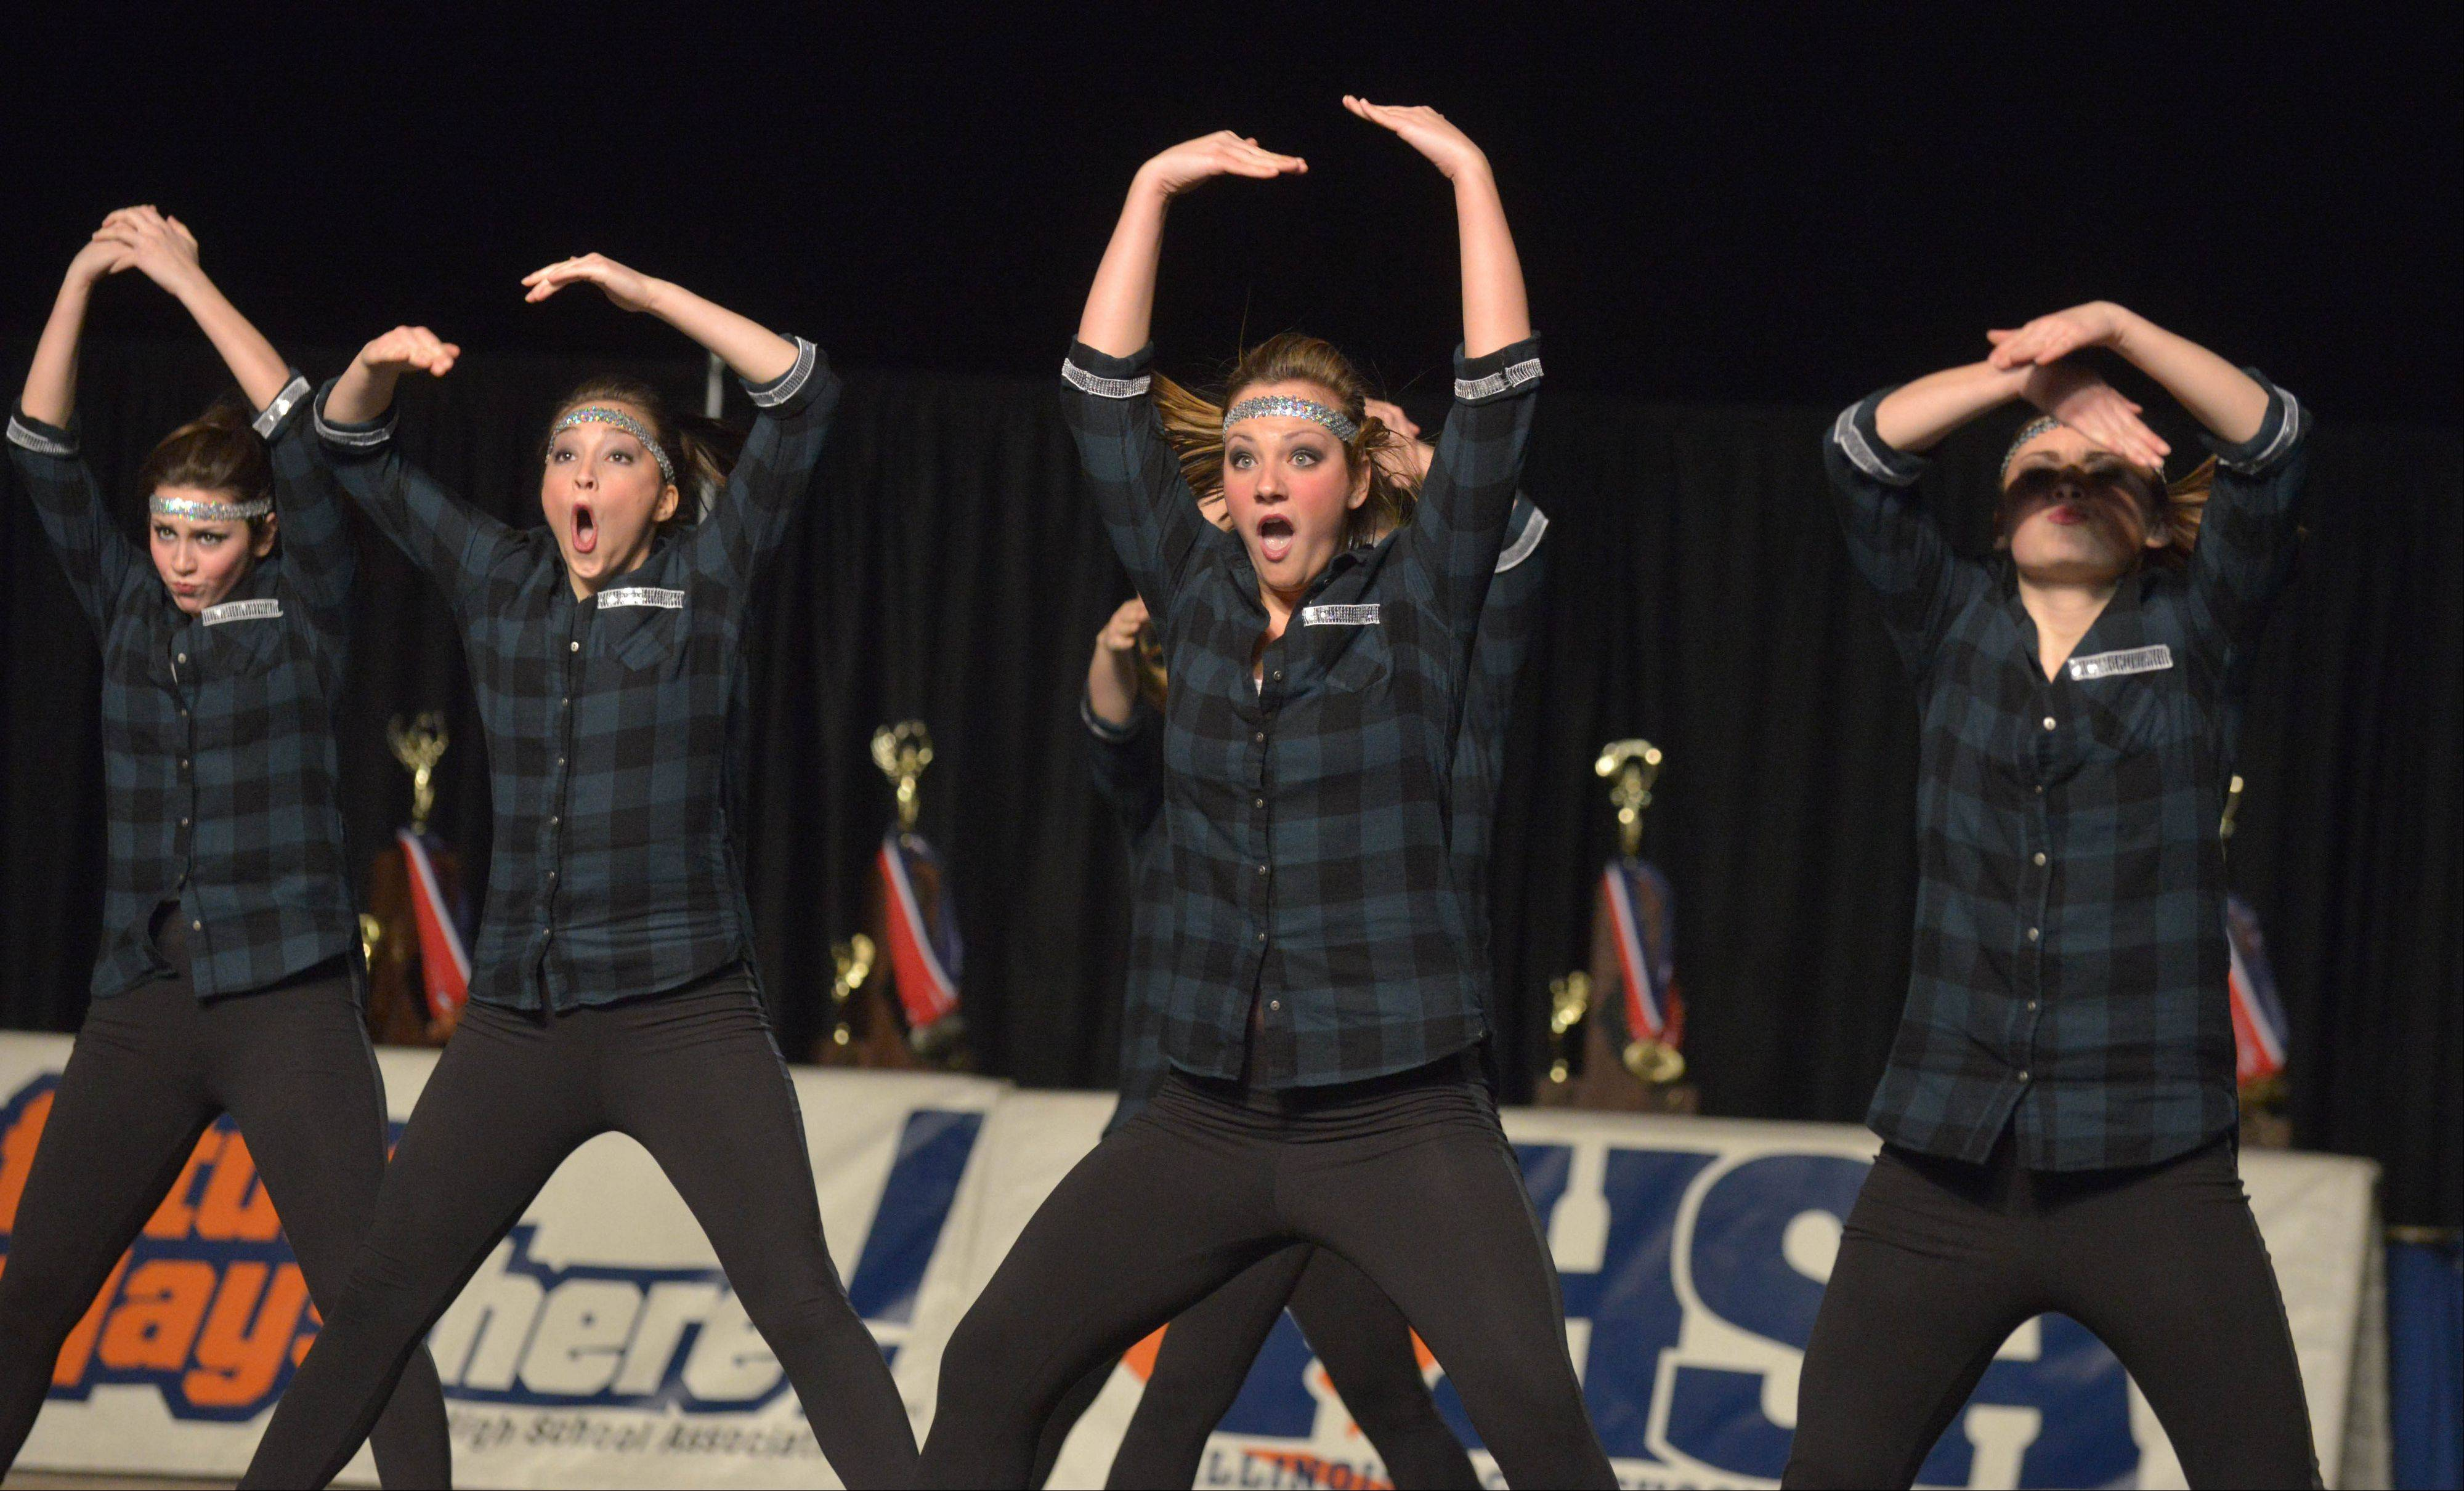 The Prairie Ridge High School dance team takes part in the Competitive Dance preliminary round Friday at U.S. Cellular Coliseum in Bloomington.